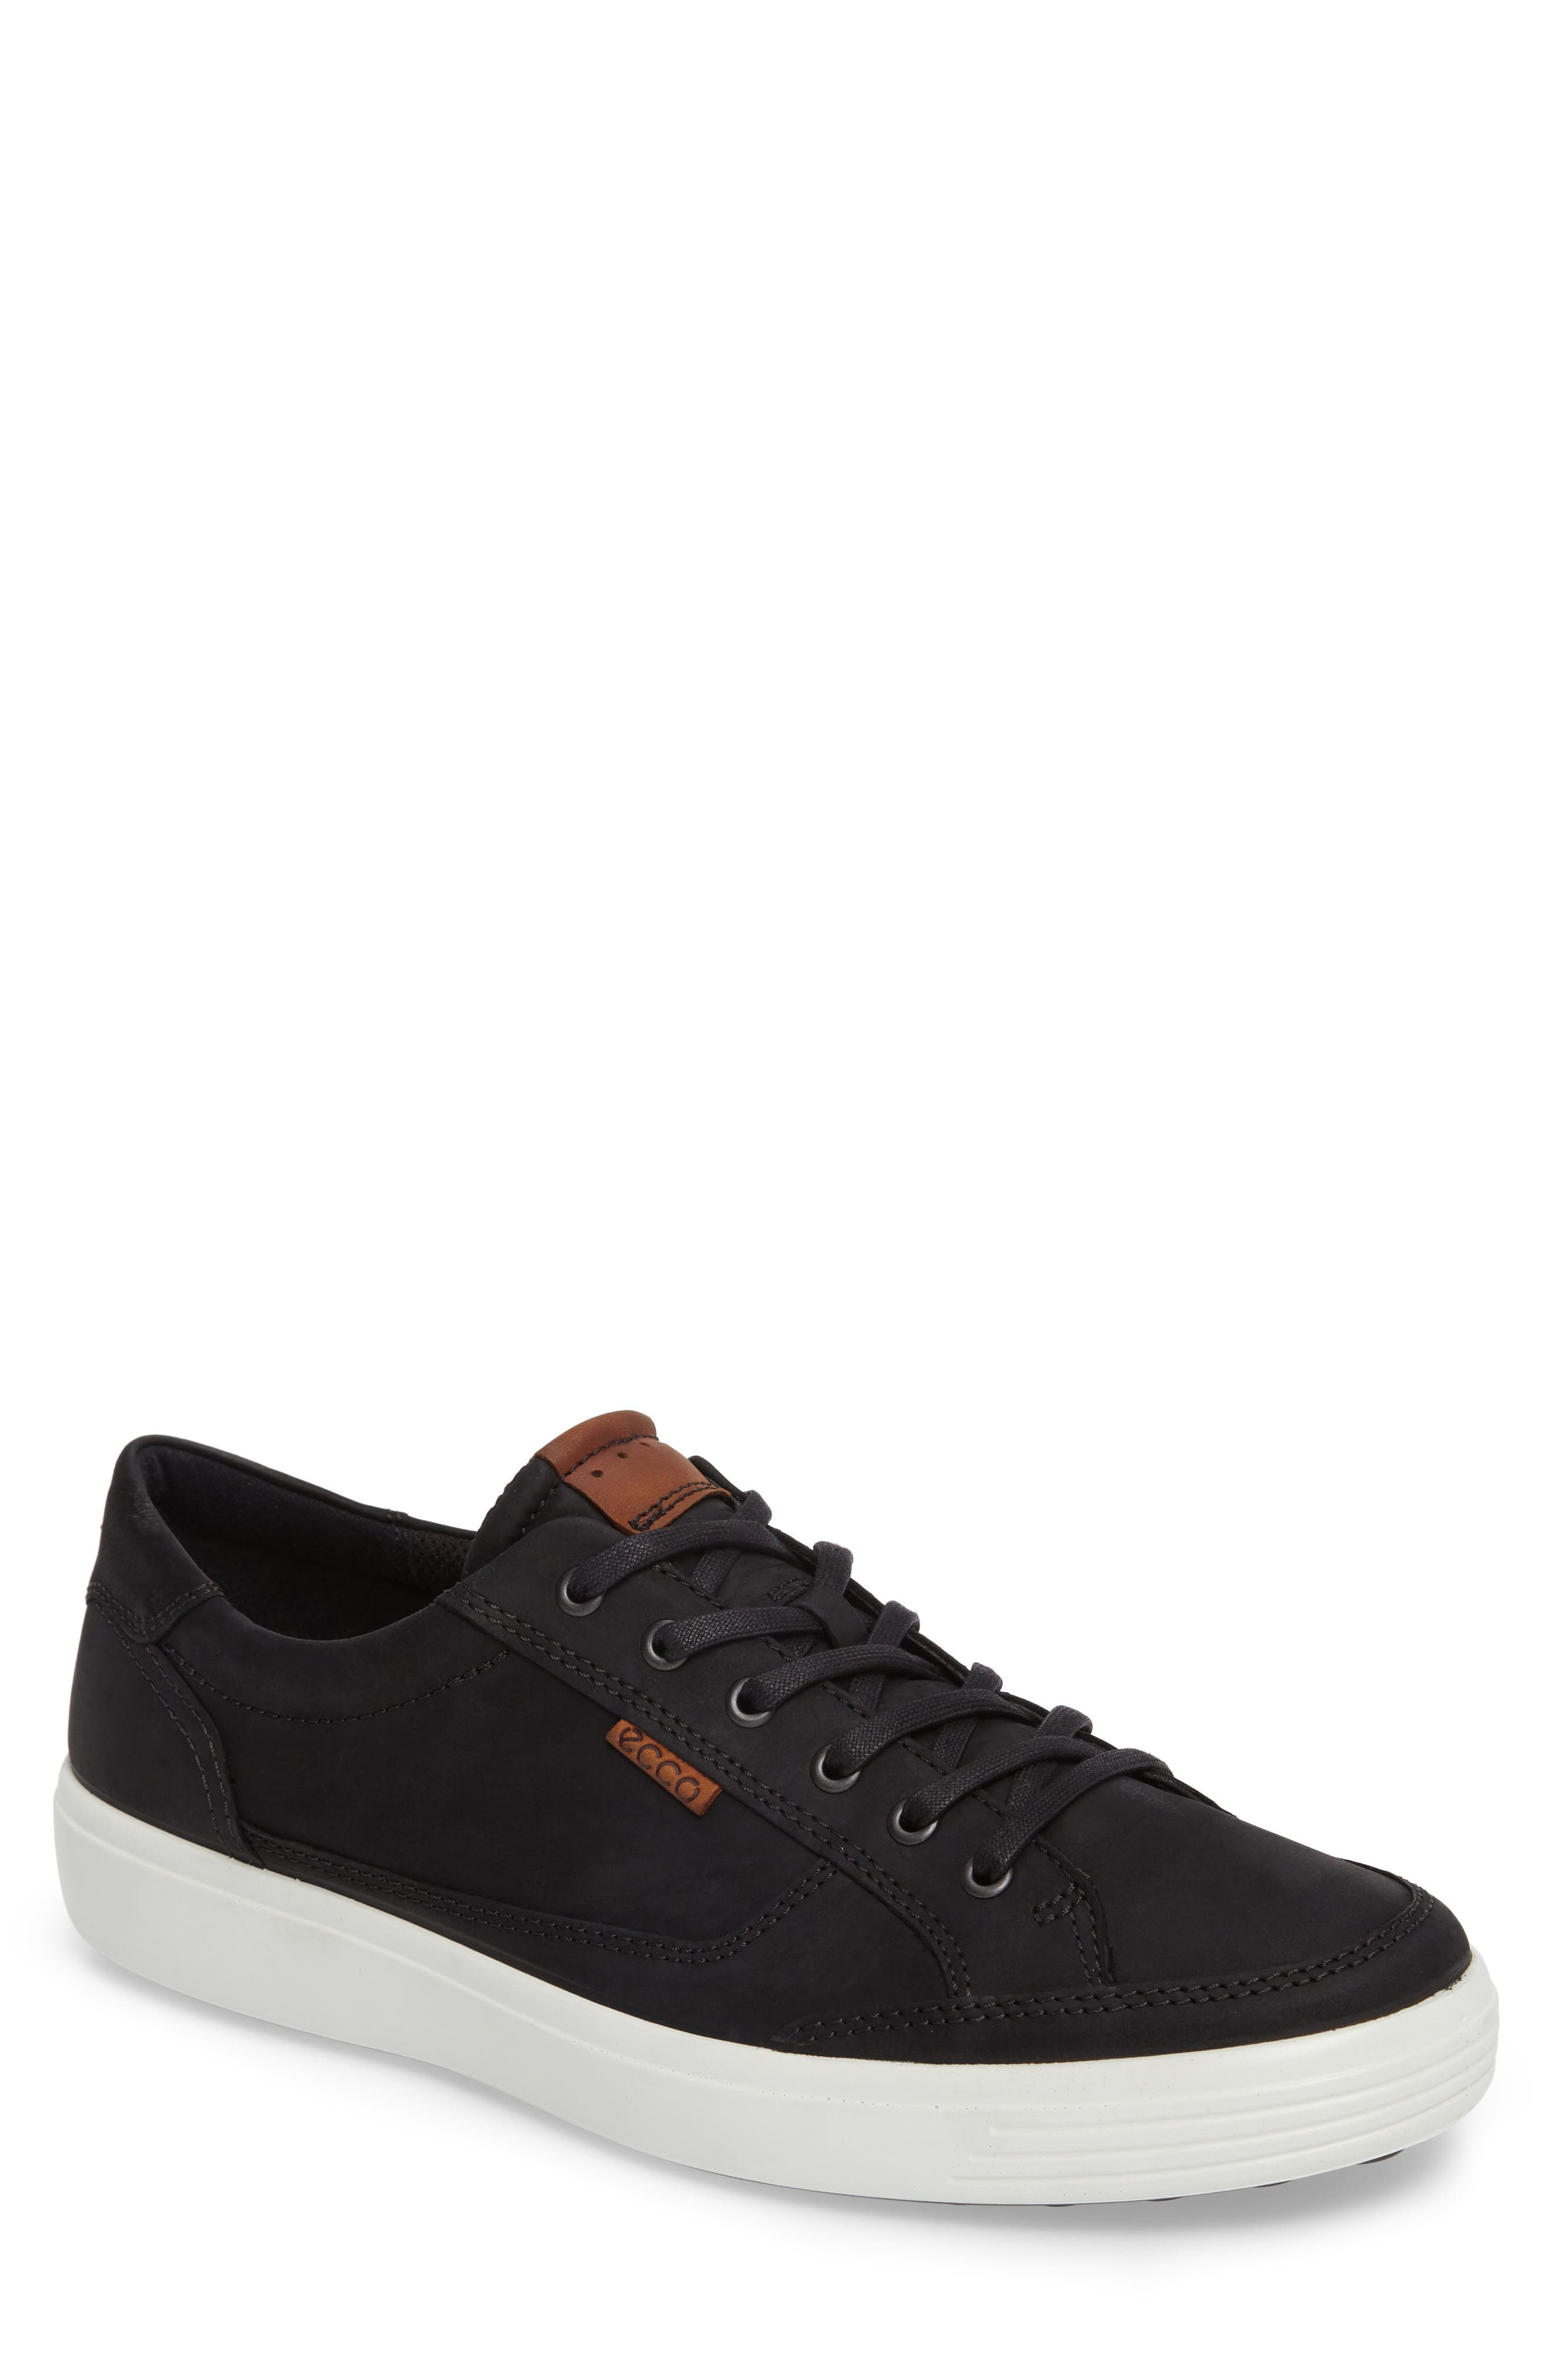 ECCO Soft 7 Long Lace Sneaker, Main, color, BLACK LEATHER